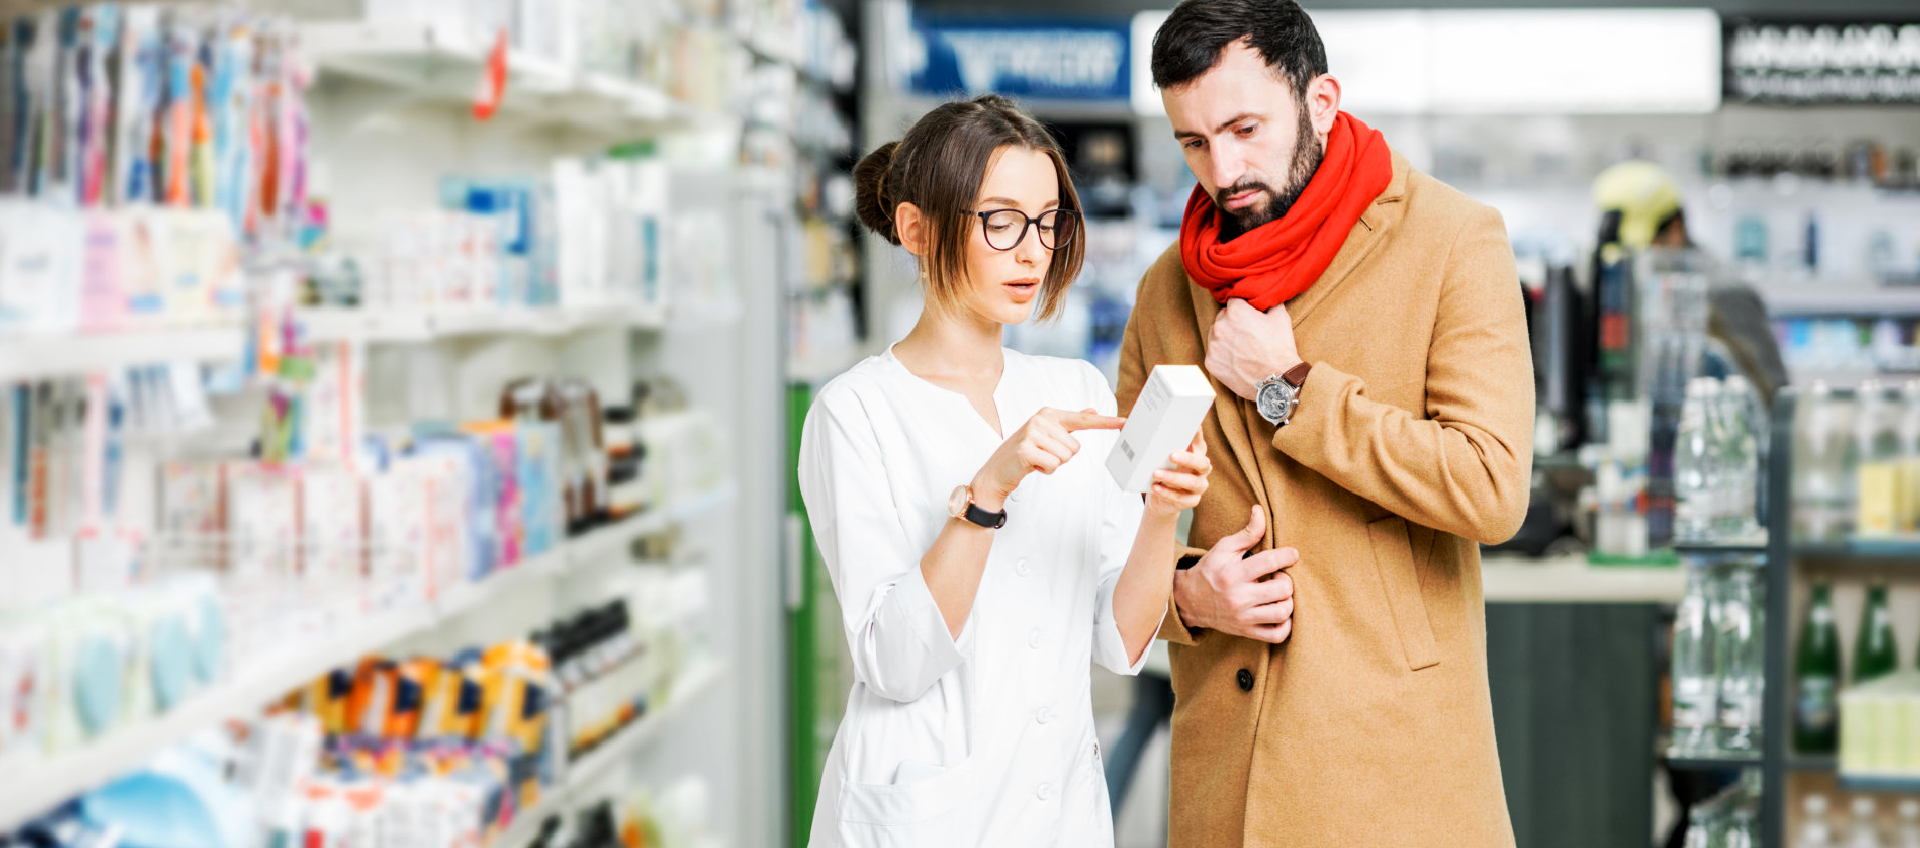 pharmacist and a customer looking for medicine